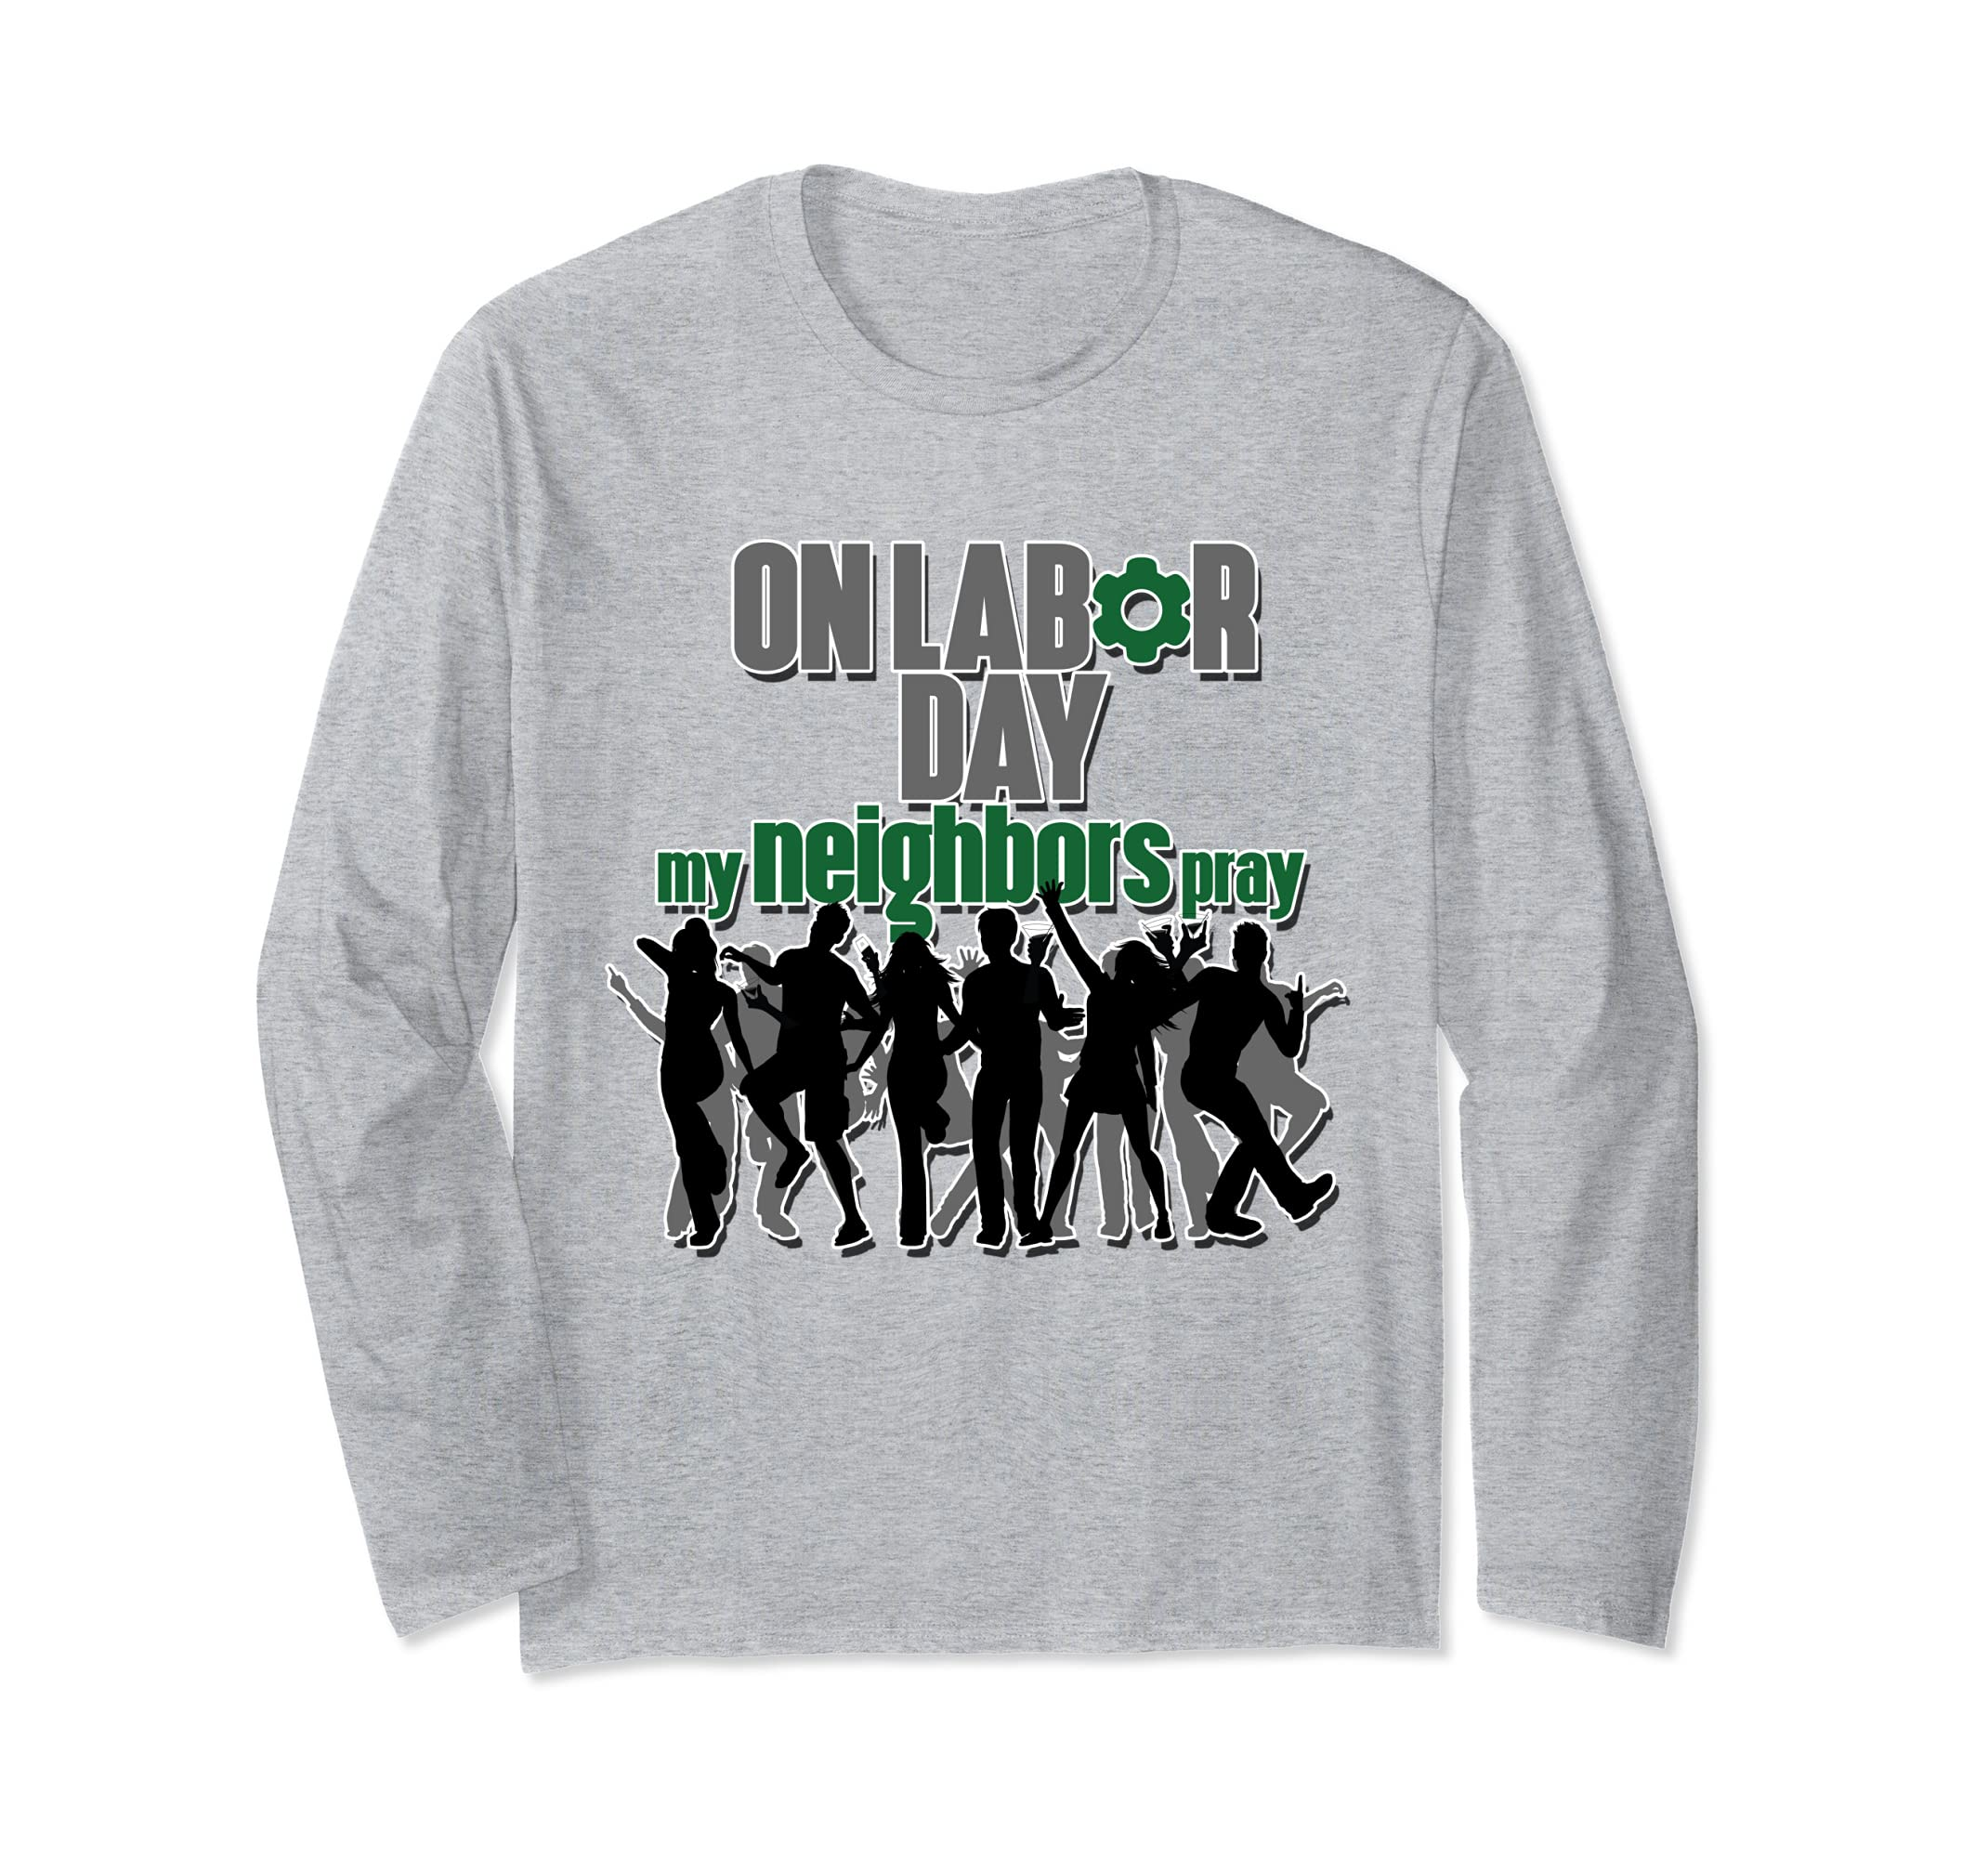 Funny Labor Day Long-Sleeve T-Shirt For Labor Day Party-anz